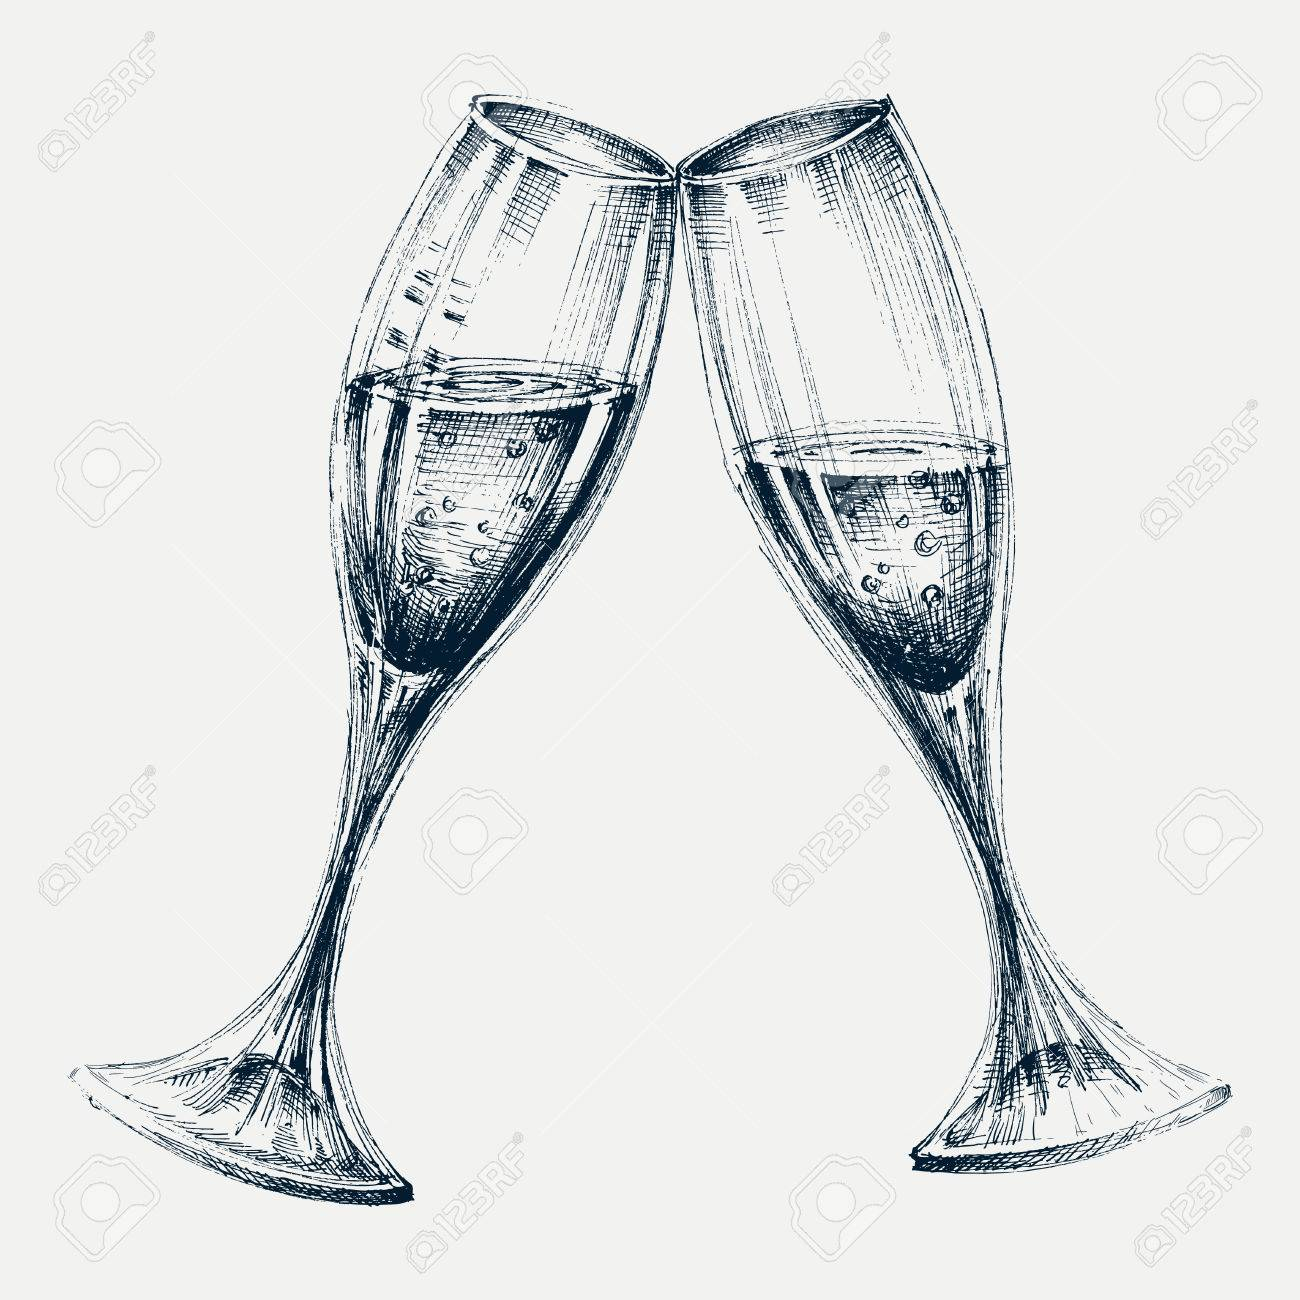 Champagne glasses isolated, New Year's party design - 69424617